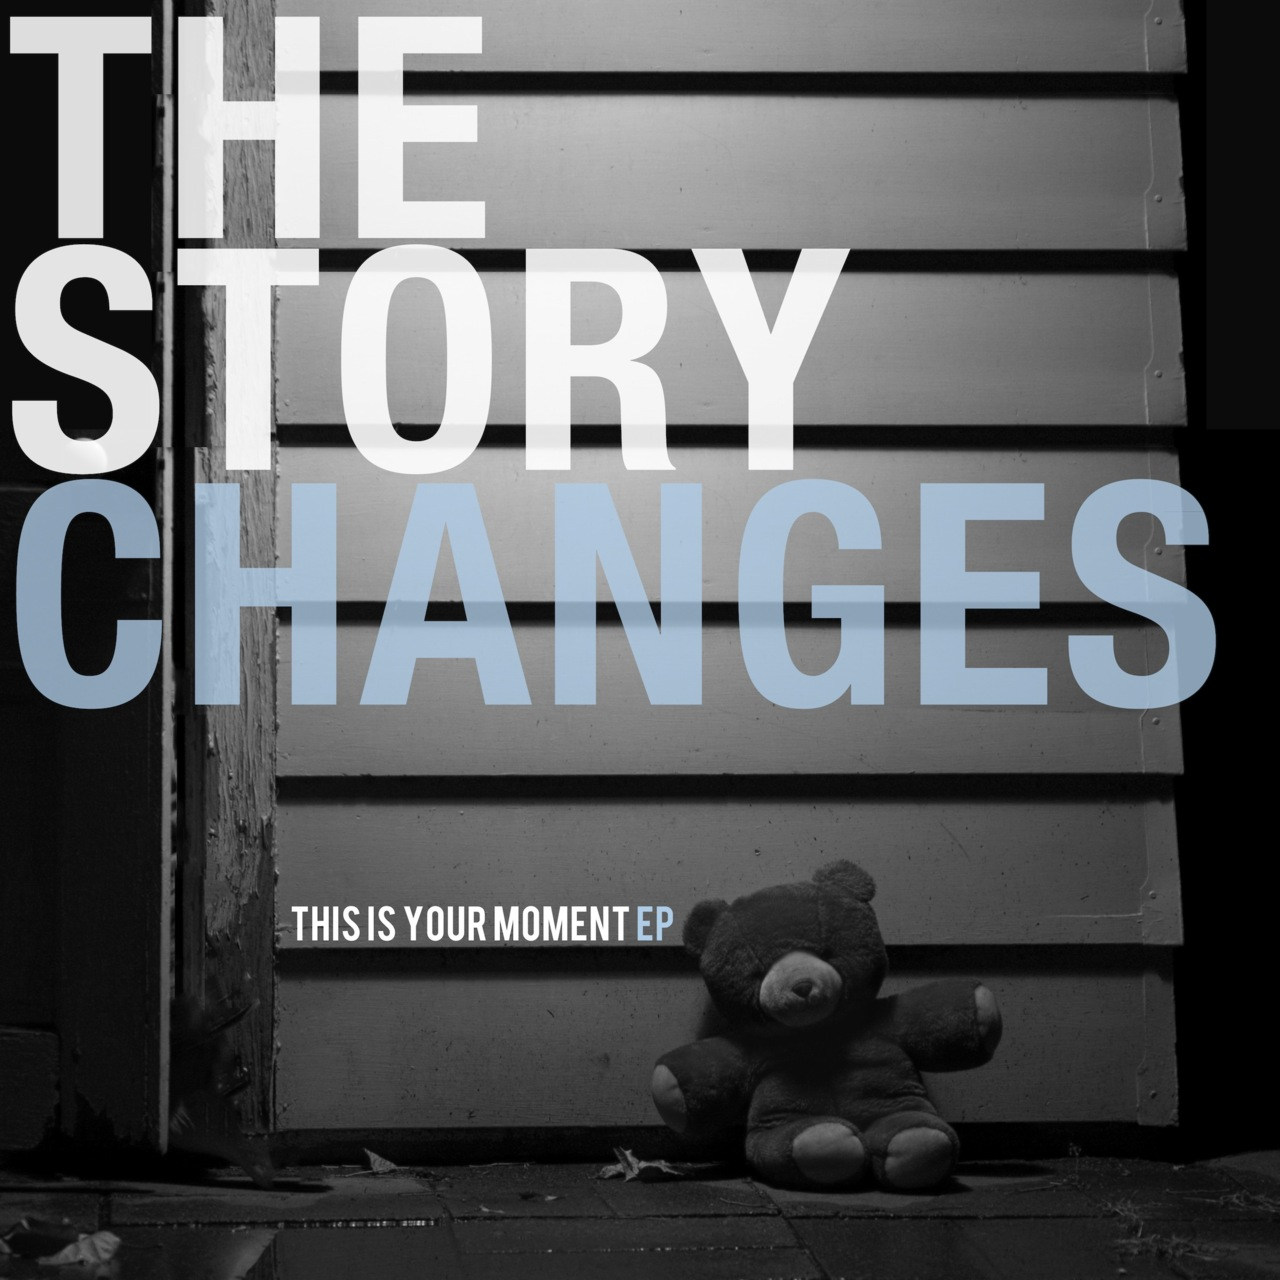 "A great review from UK on  THE STORY CHANGES  new EP. Pick up a copy  HERE . Thanks to Venture Magazine for the digging the record.       Article by:   Danielle Tracy      After the release of their split album,  'Analogies,'  The Story Changes have continued to grow musically from all of their continuous touring since 2006.  The band now has a chance to bring something new to their repertoire to make them a band no one would soon forget. The 4 song EP, 'This Is Your Moment'  is only the beginning.     The album begins with a haunting intro played on a piano in their lead track, ""Tidal Wave.""  Mark's commanding and strong vocal performance brings out the main focus of the song which is staying in the moment and not letting it go.  "" Back and forth I'm swaying into this tidal wave ,  the pressure's forming ,  it's building up.""  The song is describing how your indecision is like a tidal wave and the longer you let it hang over you, the more pressure you will feel.  A catchy lead track, and the perfect way to start off the album.        Coming smoothly after the lead track is the song, ""How Long."" This song sticks out on the album as the more mellow song with a more uplifting meaning behind the song than we are used to from the traditional writing of the band.  The question that keeps popping up in the song is, how long are we supposed to wait for people to find what they are fighting for?  These words depict someone waiting around for you to find what you're fighting for because all we are doing is wasting time.  Everyone needs to know where they stand to be able to stand on their own two feet.  The way Mark and Poppy stay in sync throughout the song, gives it a hypnotic sound that will make this song an easy favorite.     The next song on the album is, ""Nights Collide.""  A very strong, but mellow song that adds some catchy guitar riffs to make it the ""repeat"" song off the album.  This song definitely stands out as the band's rock anthem.  The way it was written will have many people relating to its honest lyrics about standing up and sticking together.  "" We don't stand a chance if we don't mend the cycle. ""  This line of lyrics is repeated throughout, allowing people to understand that if we don't change our ways of accepting people for who they are, this same process will keep going on forever.  No matter how different we may all be, we can stand together for the same purpose.     Lastly, The Story Changes final song is a cover of Nirvana's song, ""Breed.""  The band remained true to the spirit of Nirvana, but kept their sound alive.  They calmed the sound down more from the original heavy guitar and drum sound we are used to hearing from Nirvana.  With their own sounds mixed in, The Story Changes made a classic song their own.  A great choice of song for the band to cover, fitting in to their genre well.     As a whole, the EP is a great achievement for the band.  Being a low key band with only two members to contribute to the musical aspect, their sound is as big as a standard rock band would be. Their lyrics have gotten lighter and more driven to mean something greater than just the dark side of life. With a lighter look on life, The Story Changes is looking at a brighter future.       Overall rating:  9/10"